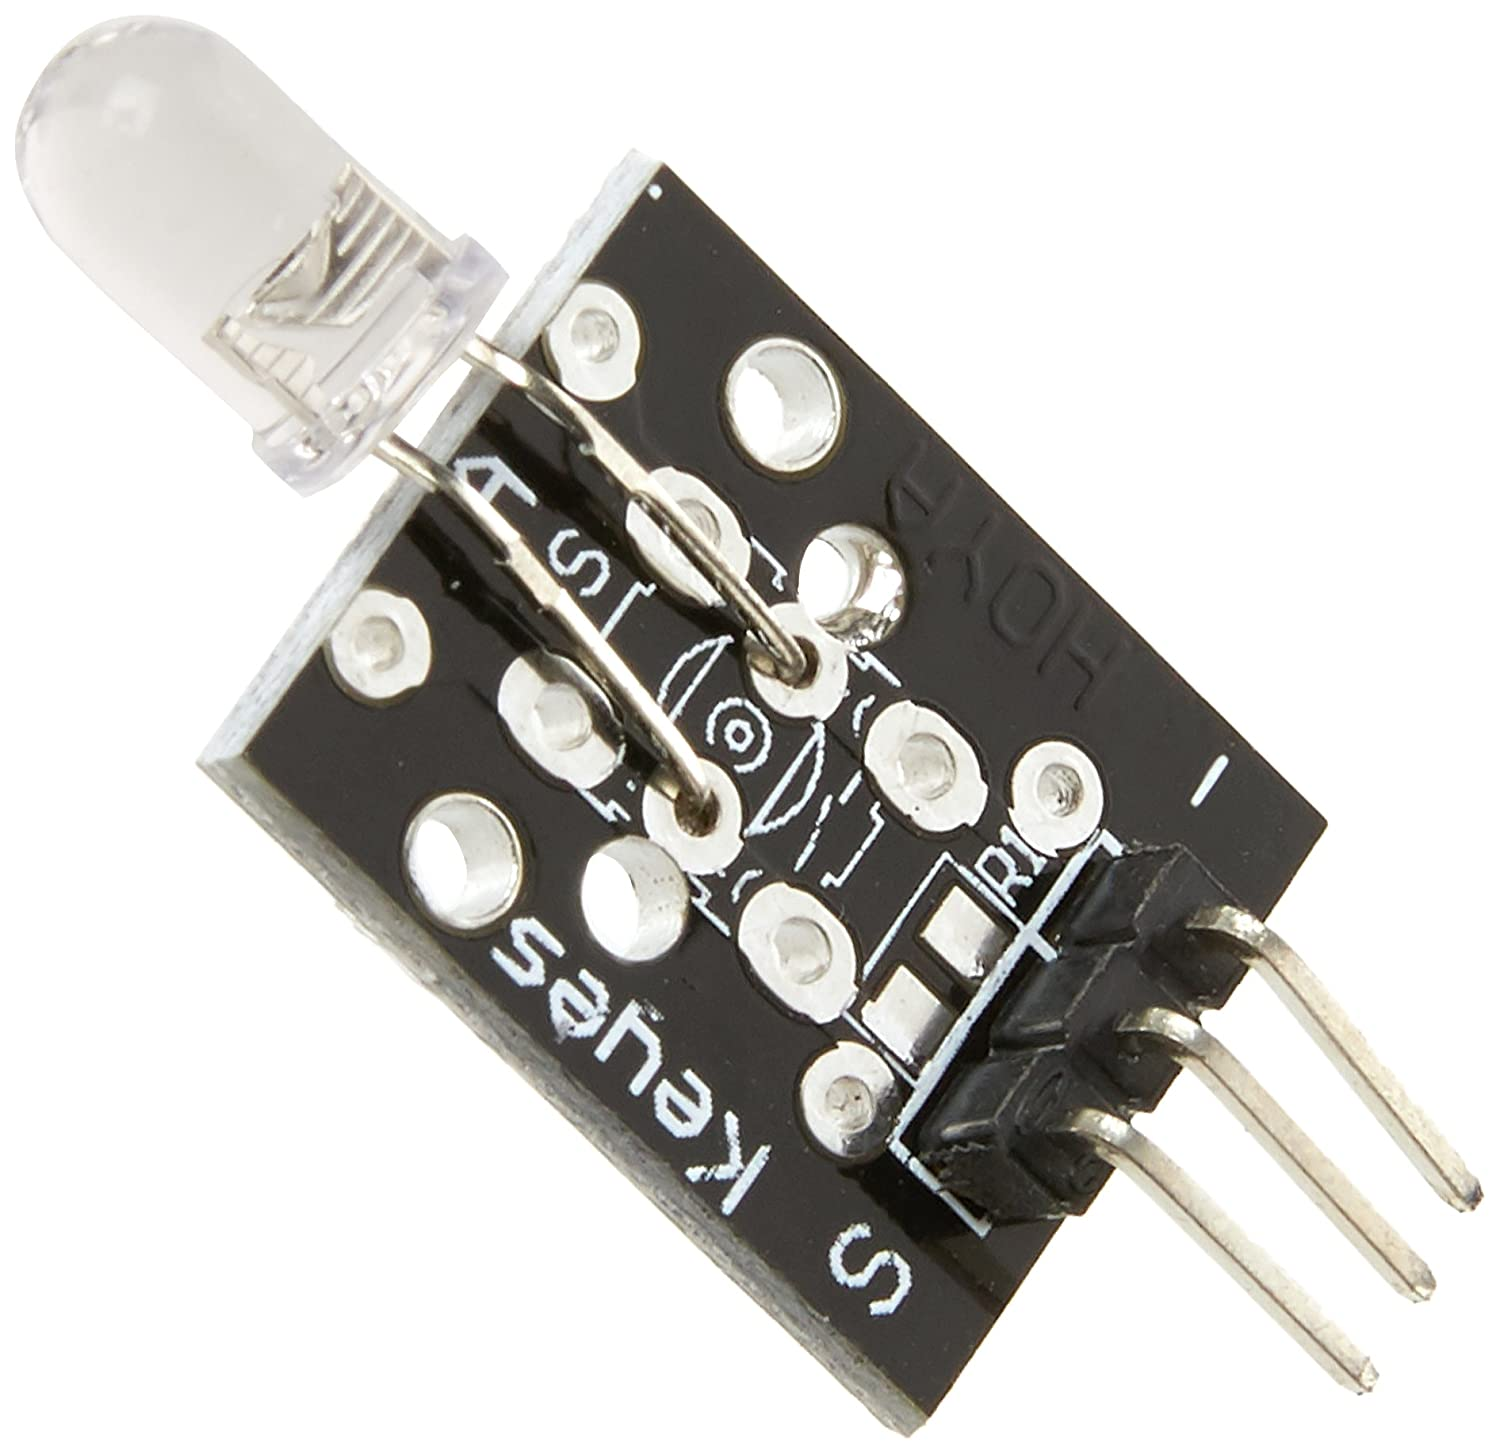 38khz Infrared Transmitter Module For Arduino Diy Project Amazonco Ir Led Circuit Tools